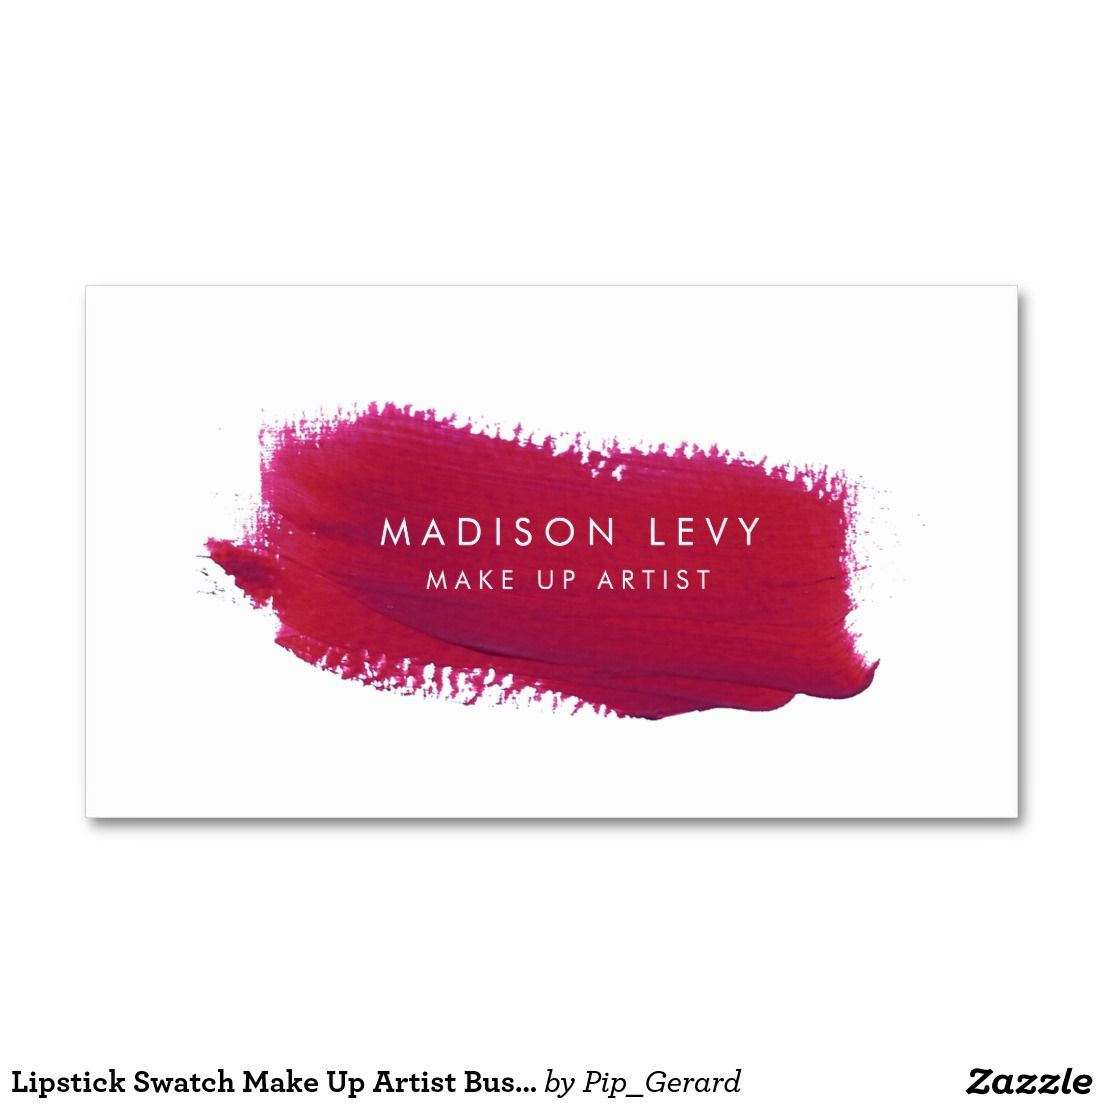 Lipstick Swatch Make Up Artist Business Cards | Business cards ...